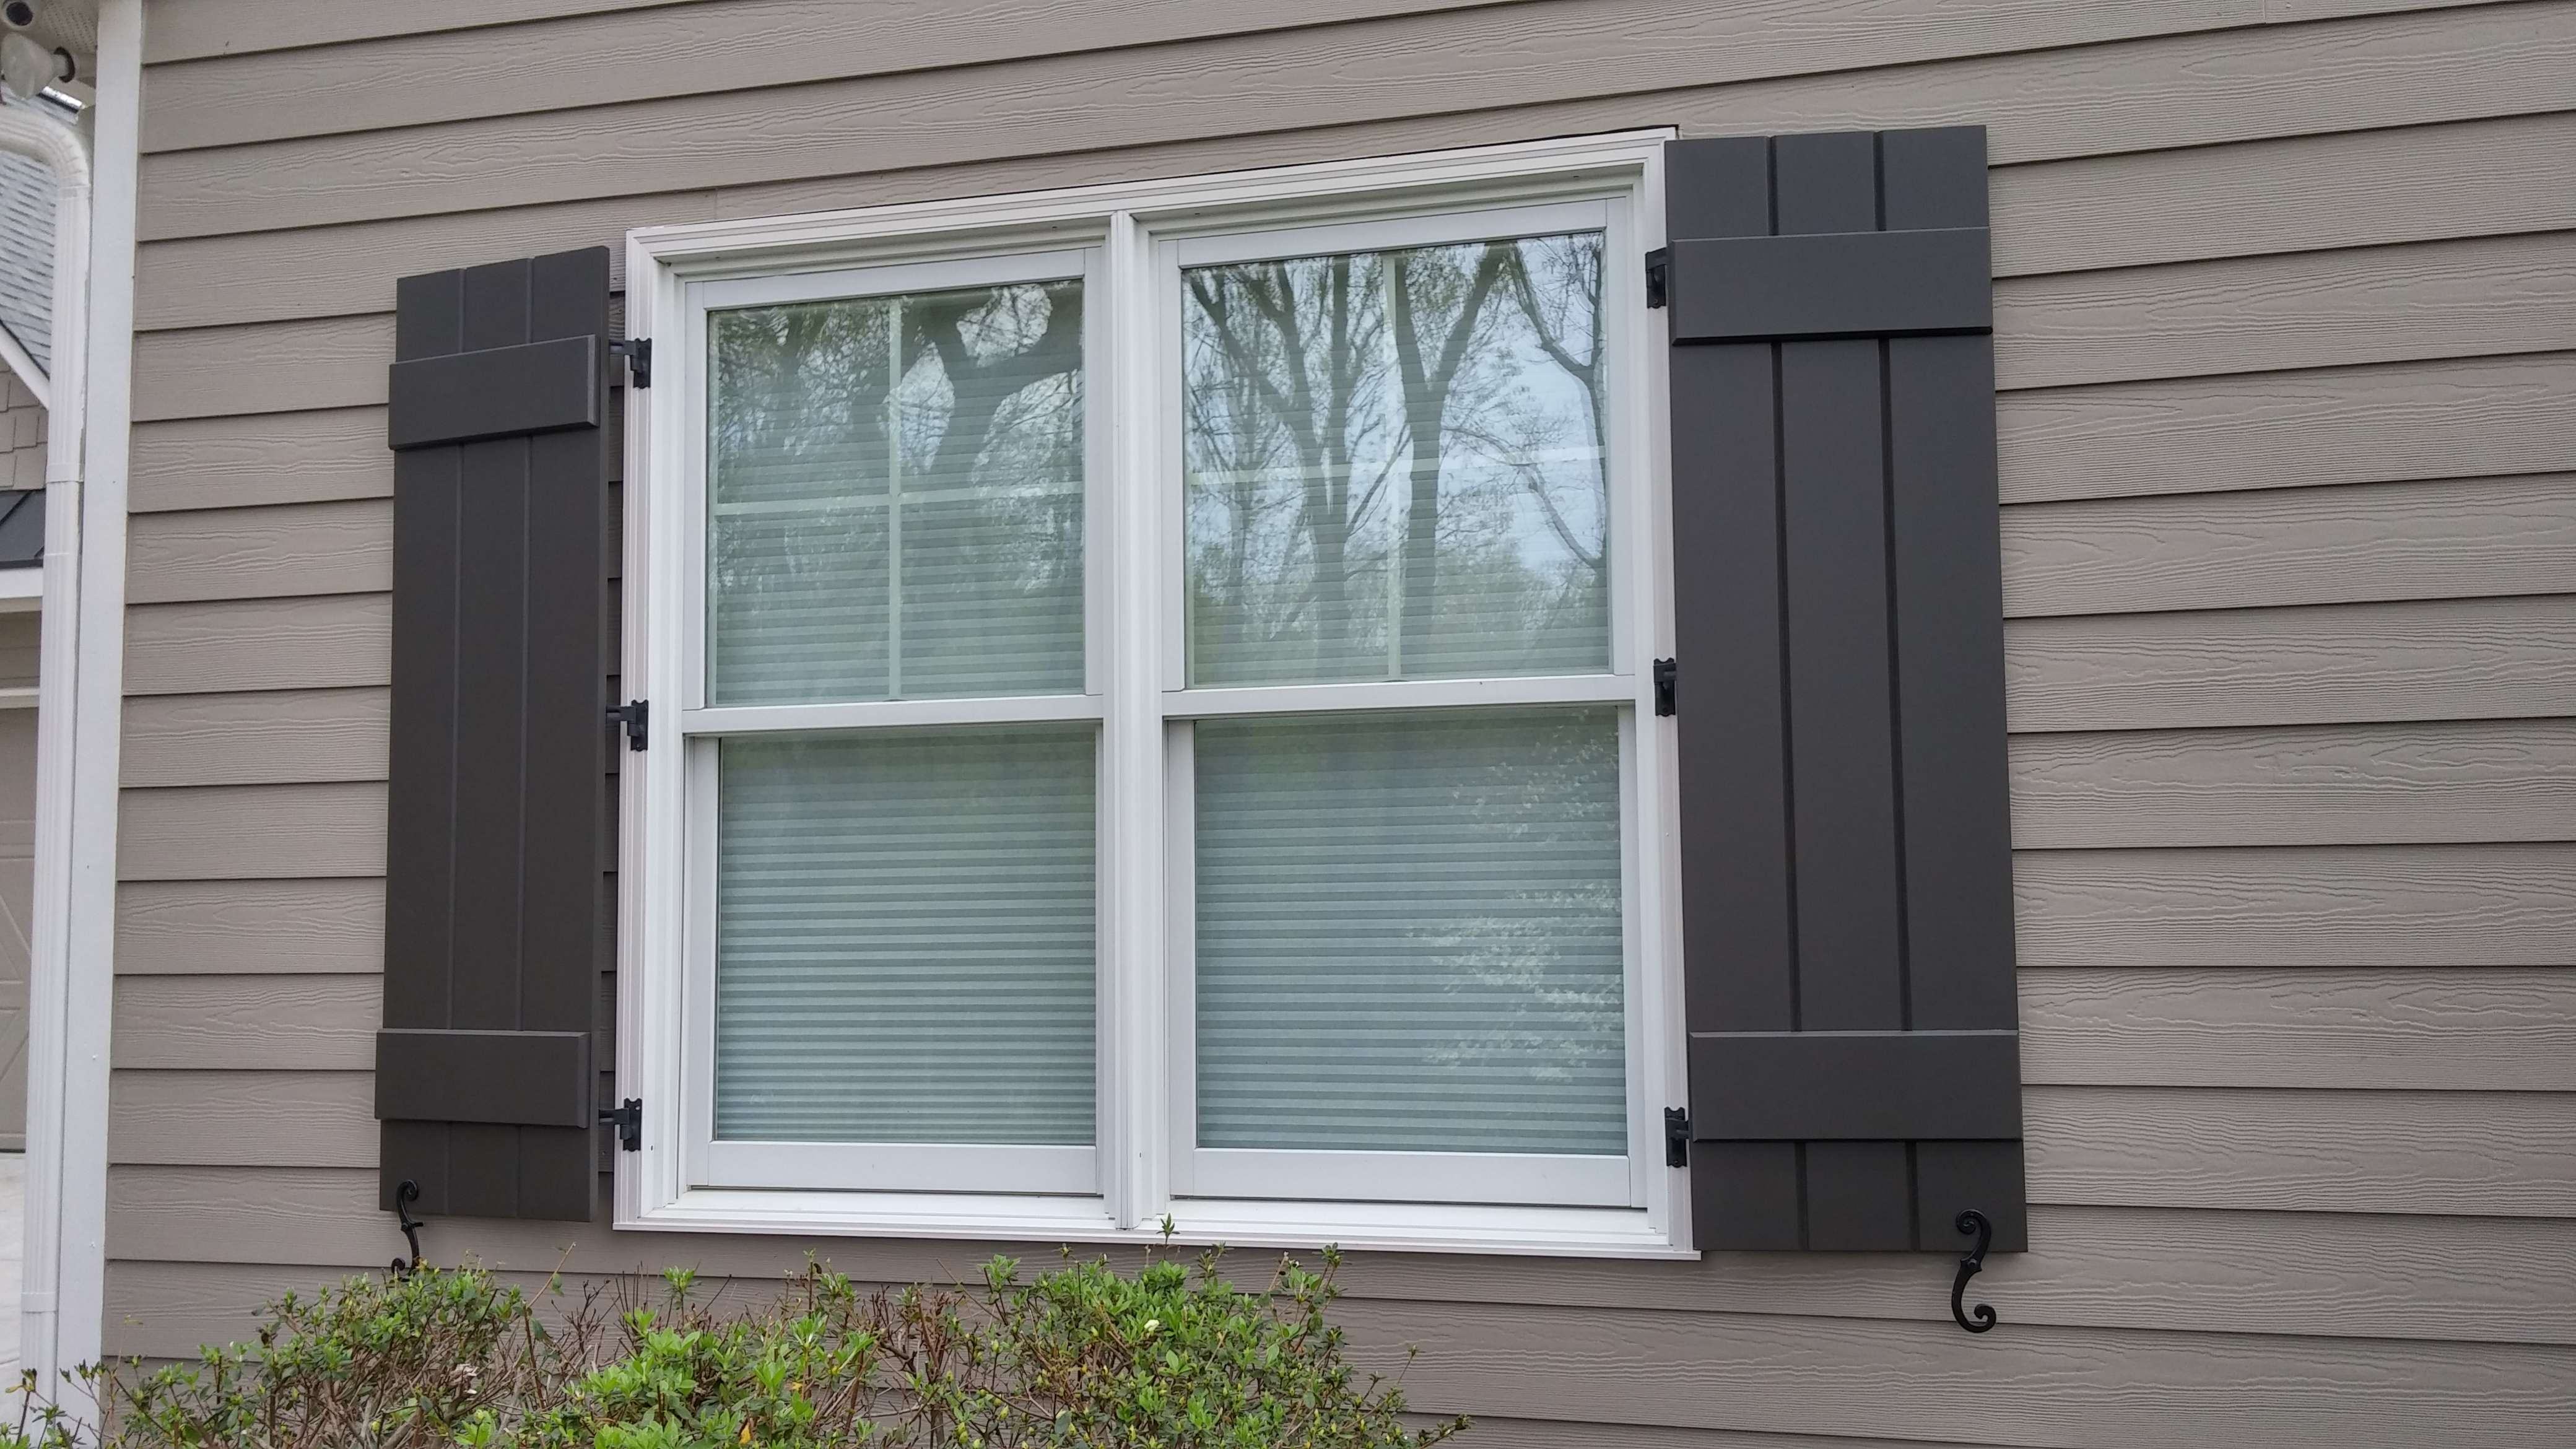 Dainty Batten Exterior Door Typical Arrangement Will Be Boards And Batten Style Shutters Board Batten Exterior Dimensions Board Or Without Adiagonal If Windows Are Very Tall Or You Want When To Use Bo houzz-02 Board And Batten Exterior